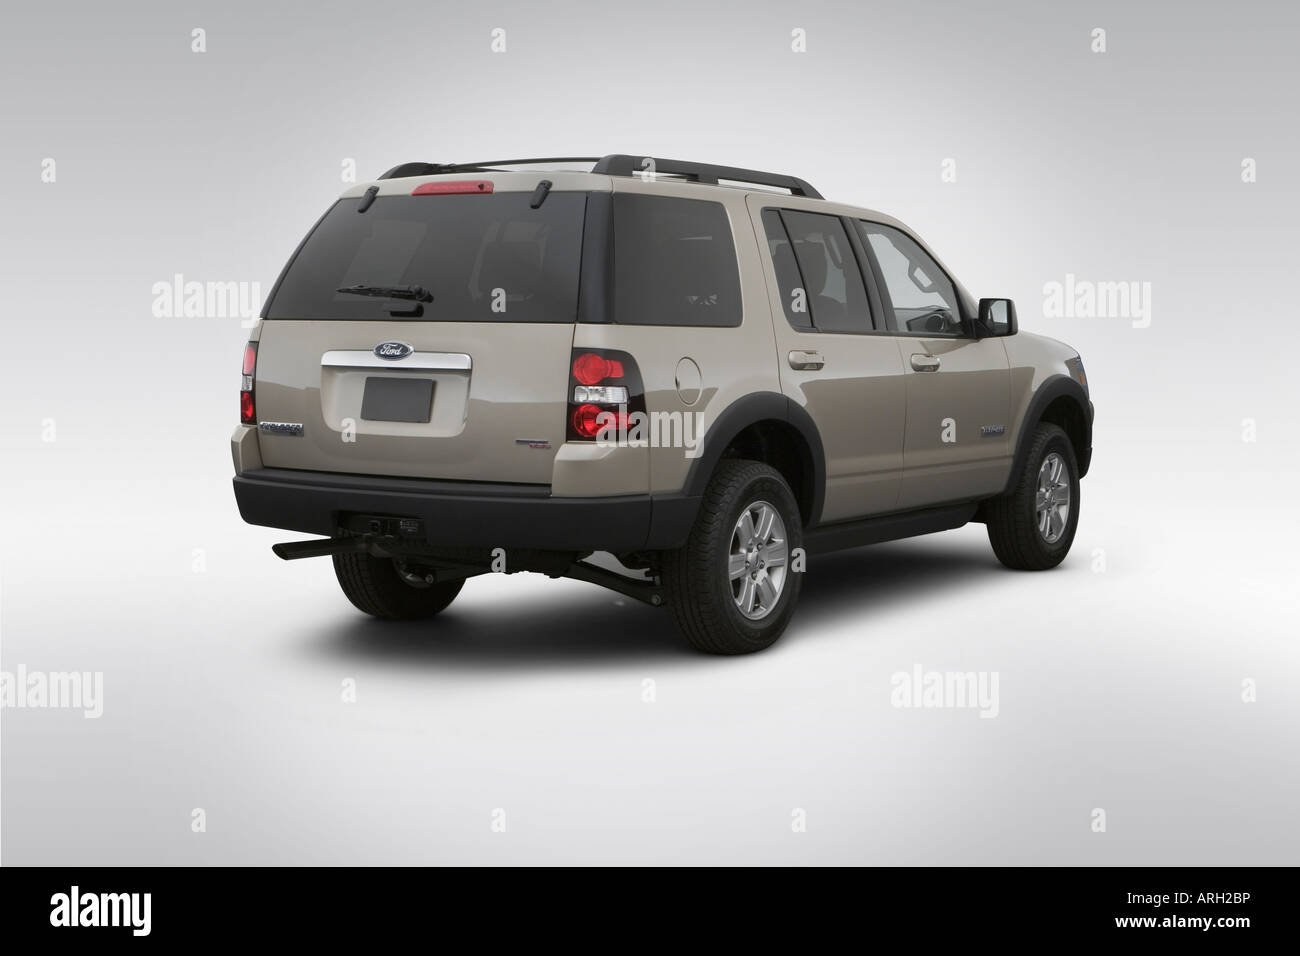 2007 ford explorer xlt in gold rear angle view